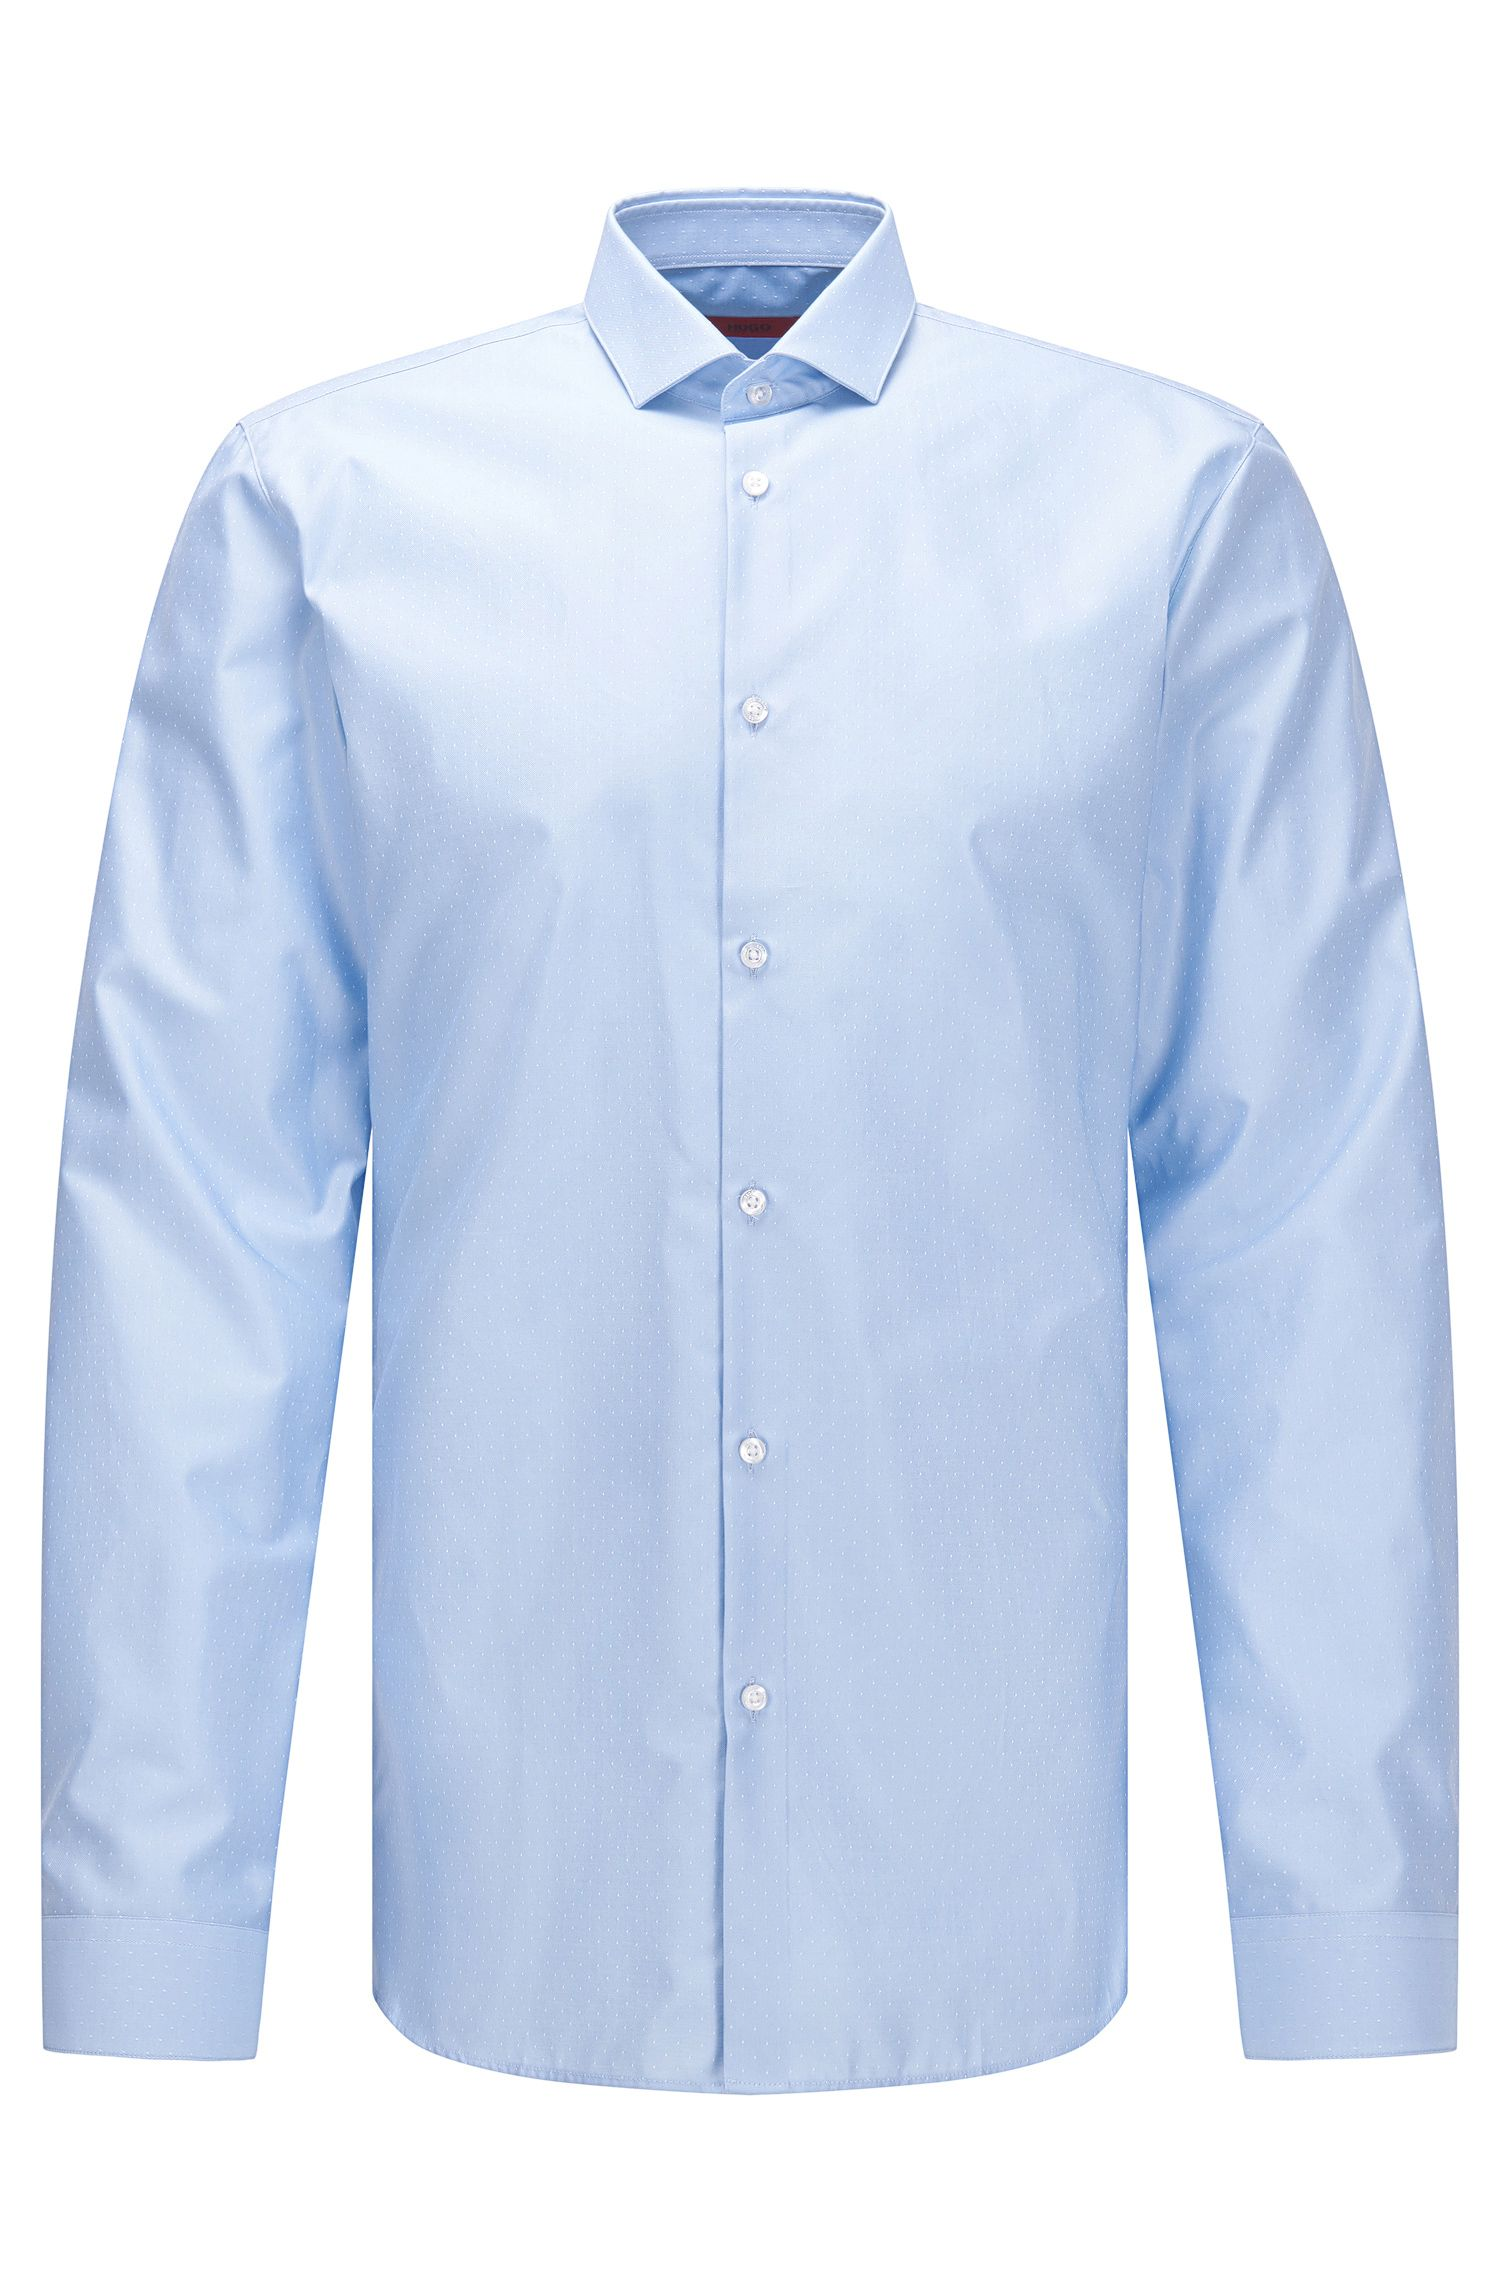 Slim-fit cotton twill shirt with micro-dot pattern